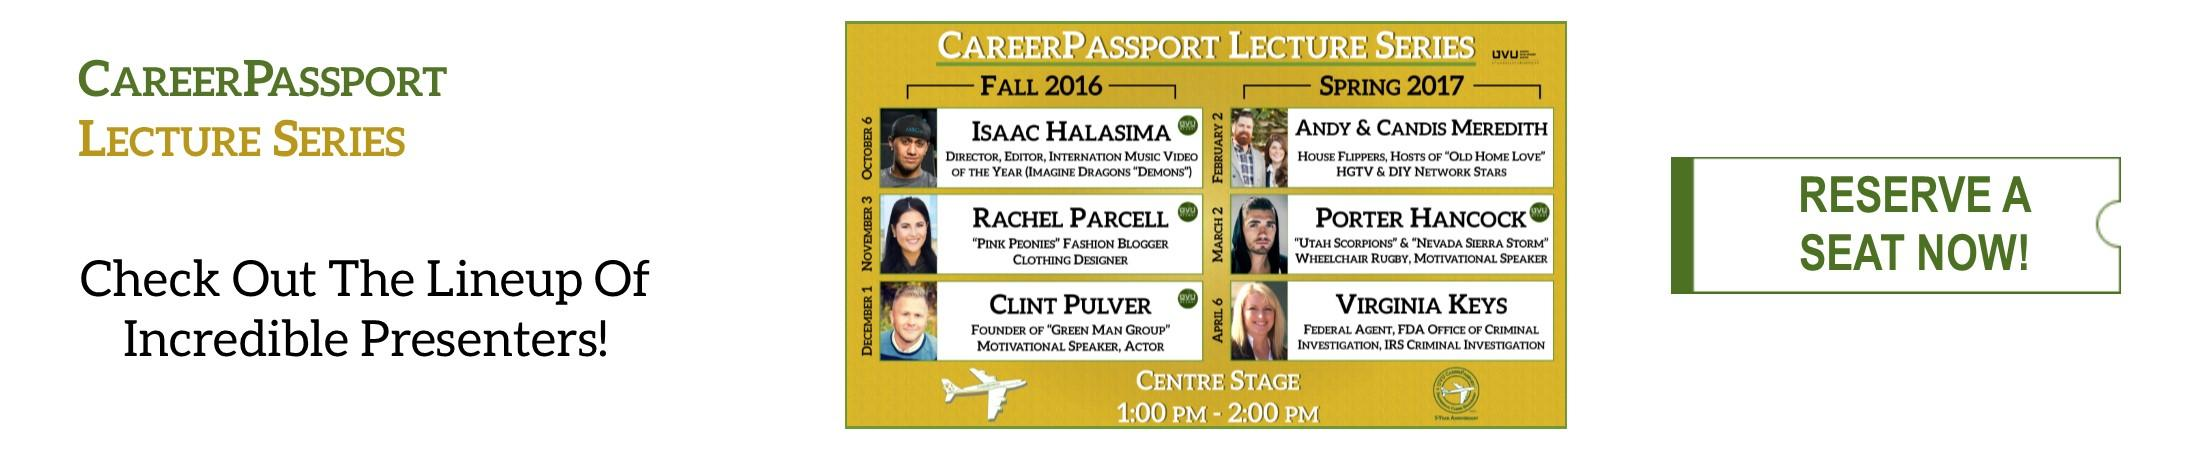 Check out the lineup of this year's incredible CareerPassport Lecture Series presenters!